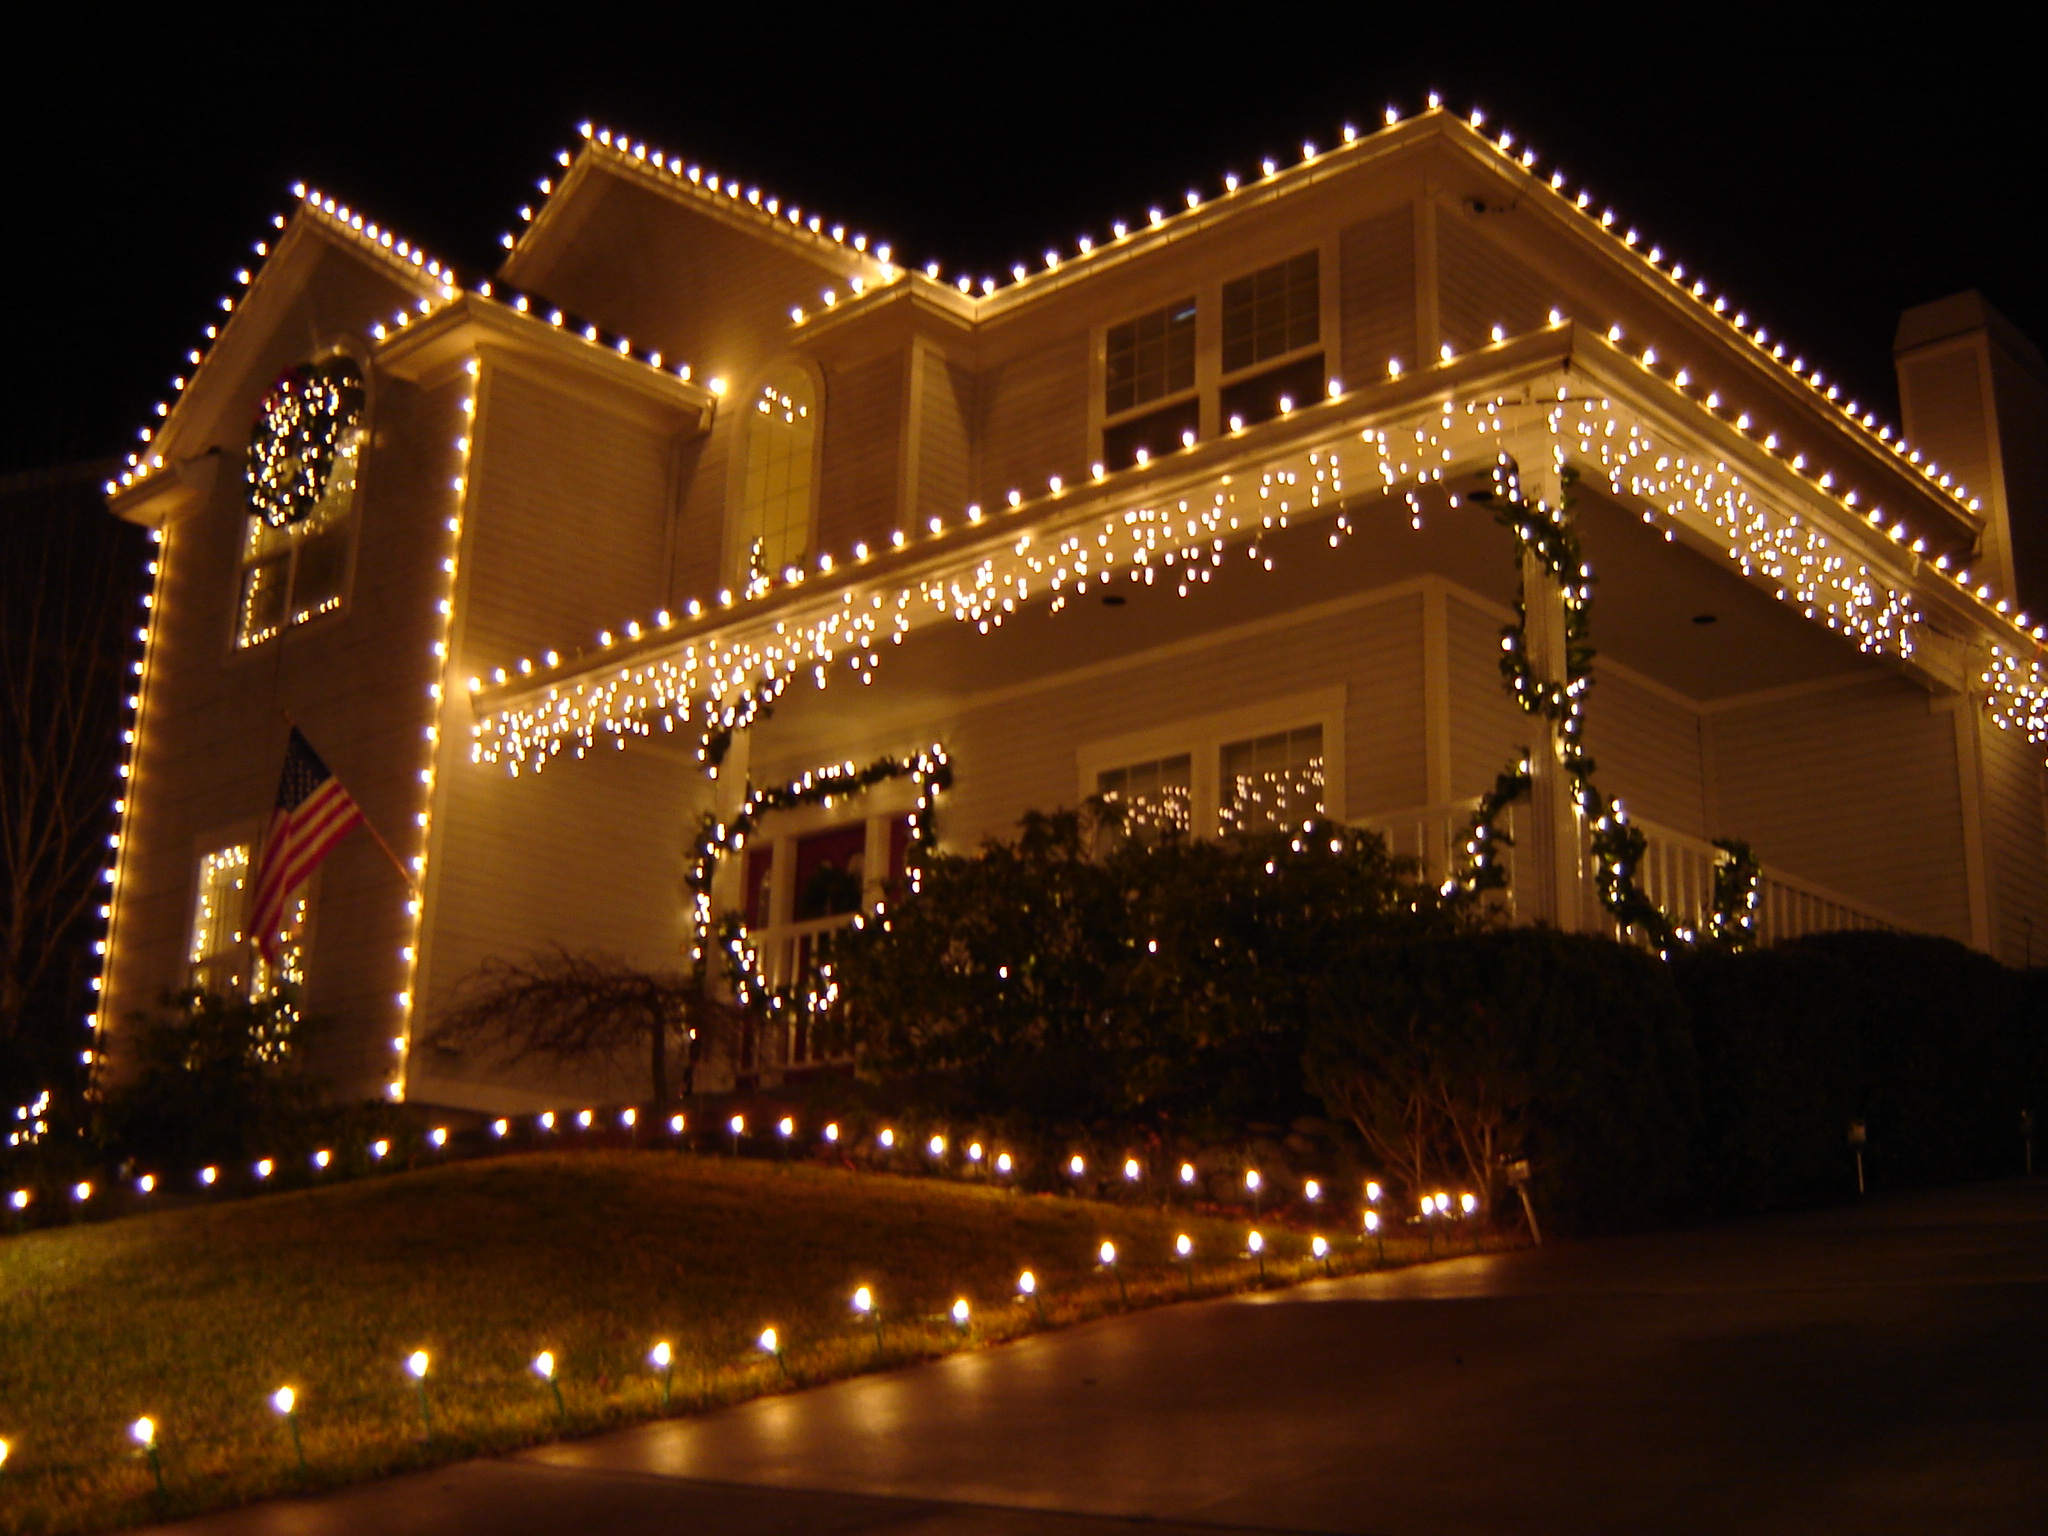 christmas-lights-on-houses-yxidfbi0